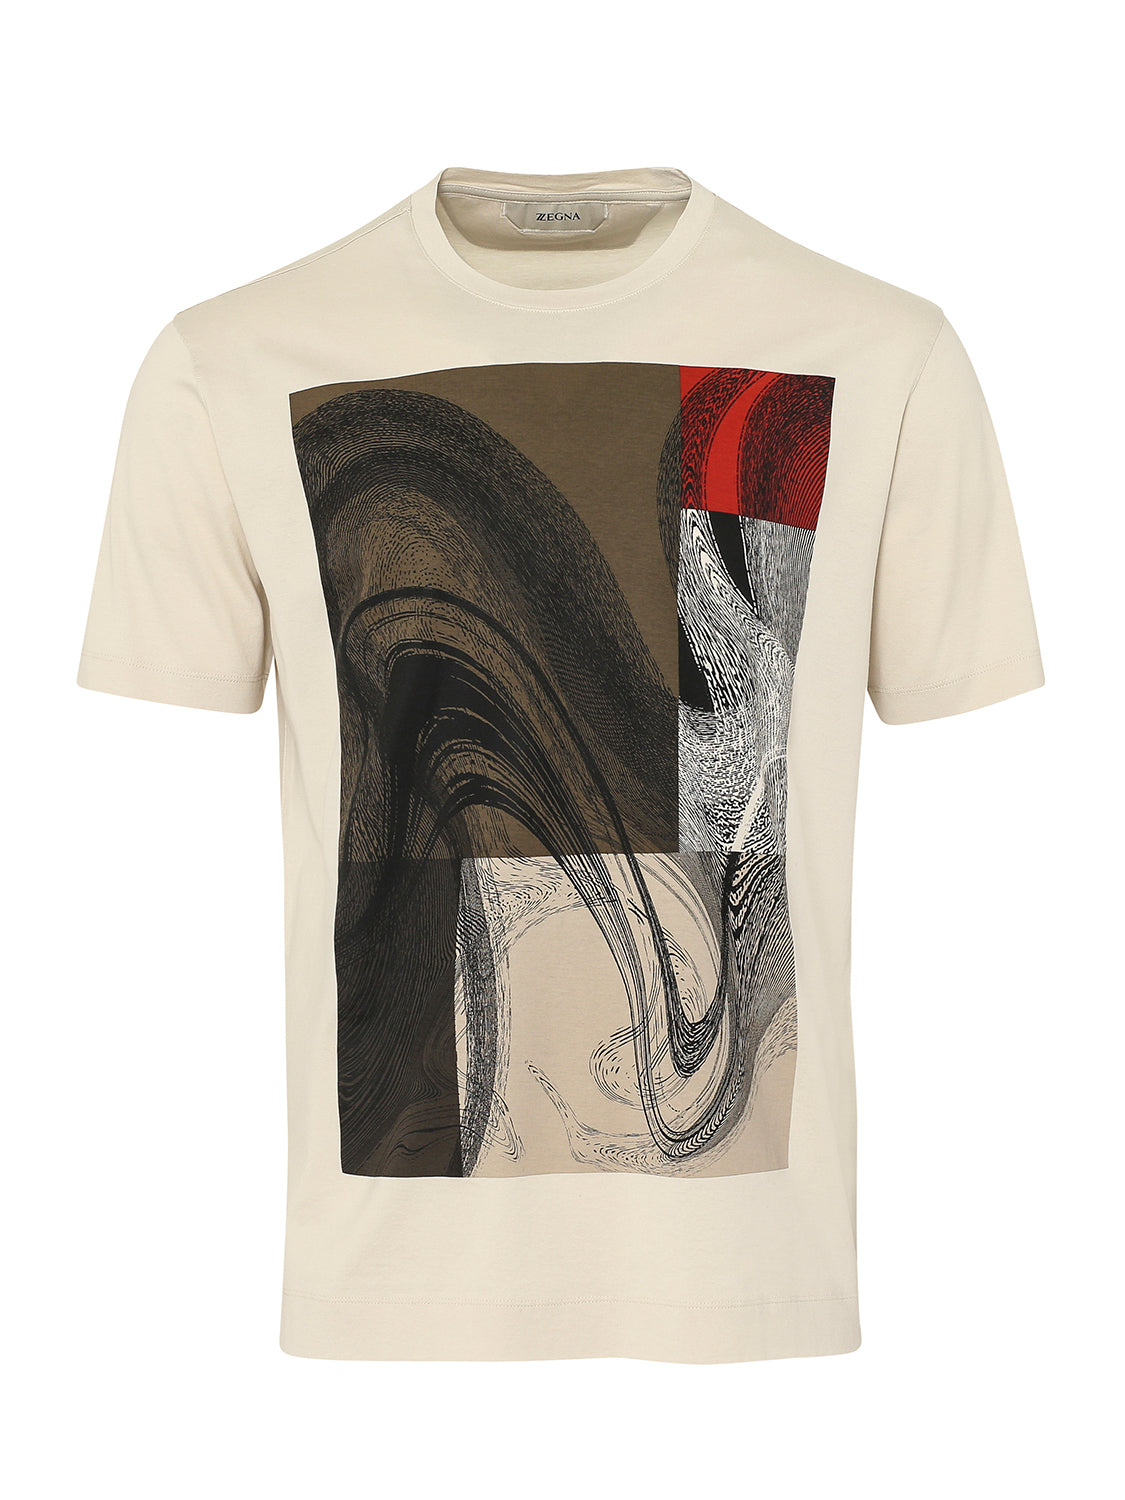 Z Zegna Mercerised Art Design T-Shirt (Beige) - Union 22